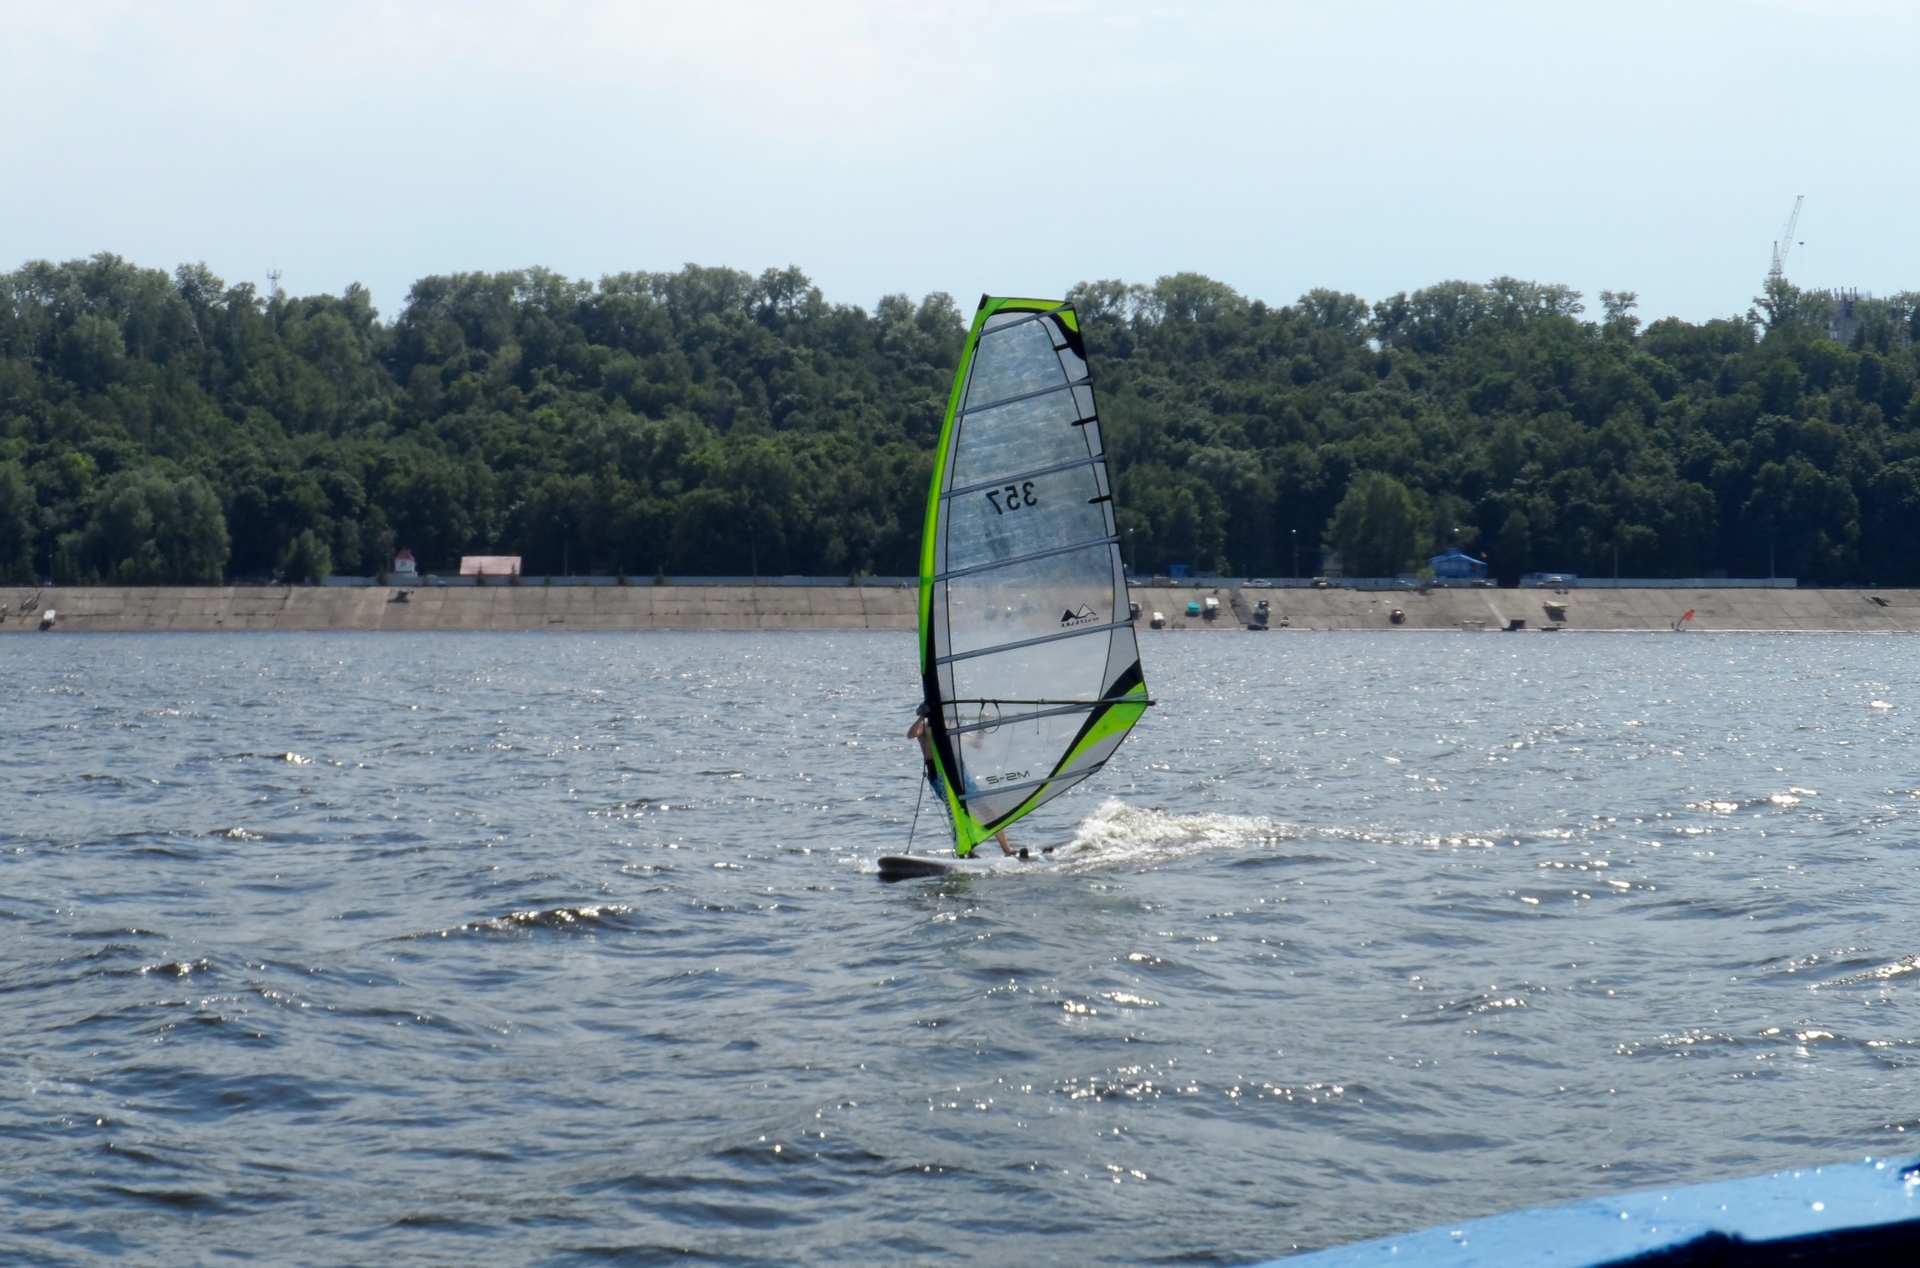 Windsurfing on sailing and water sports